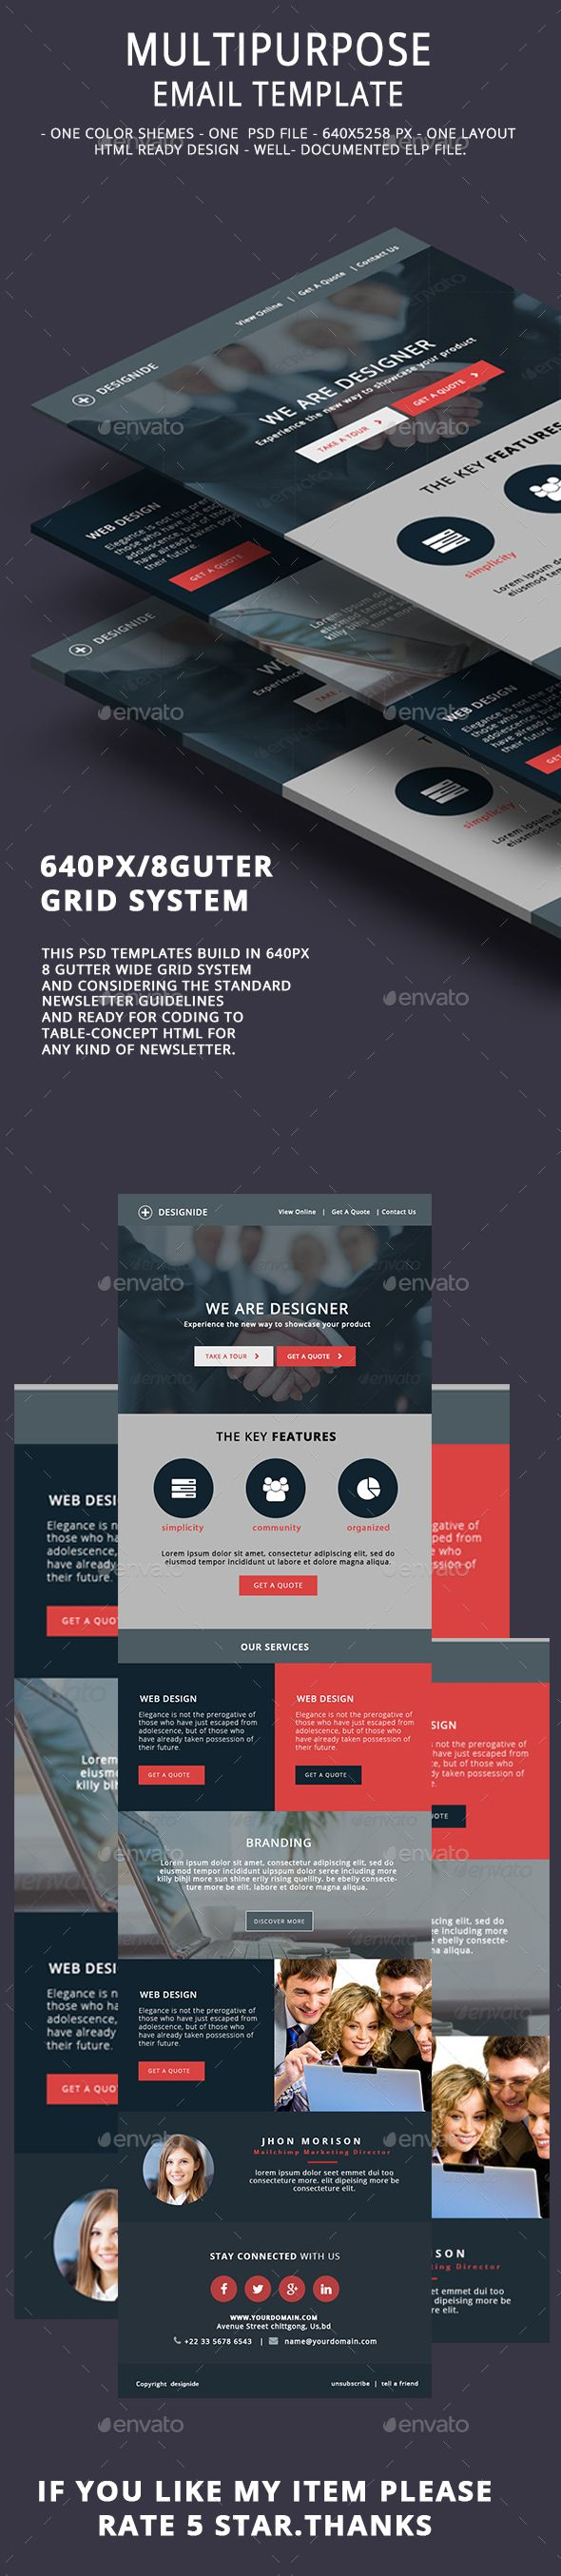 The 217 best Enewsletter Templates images on Pinterest | Infographic ...